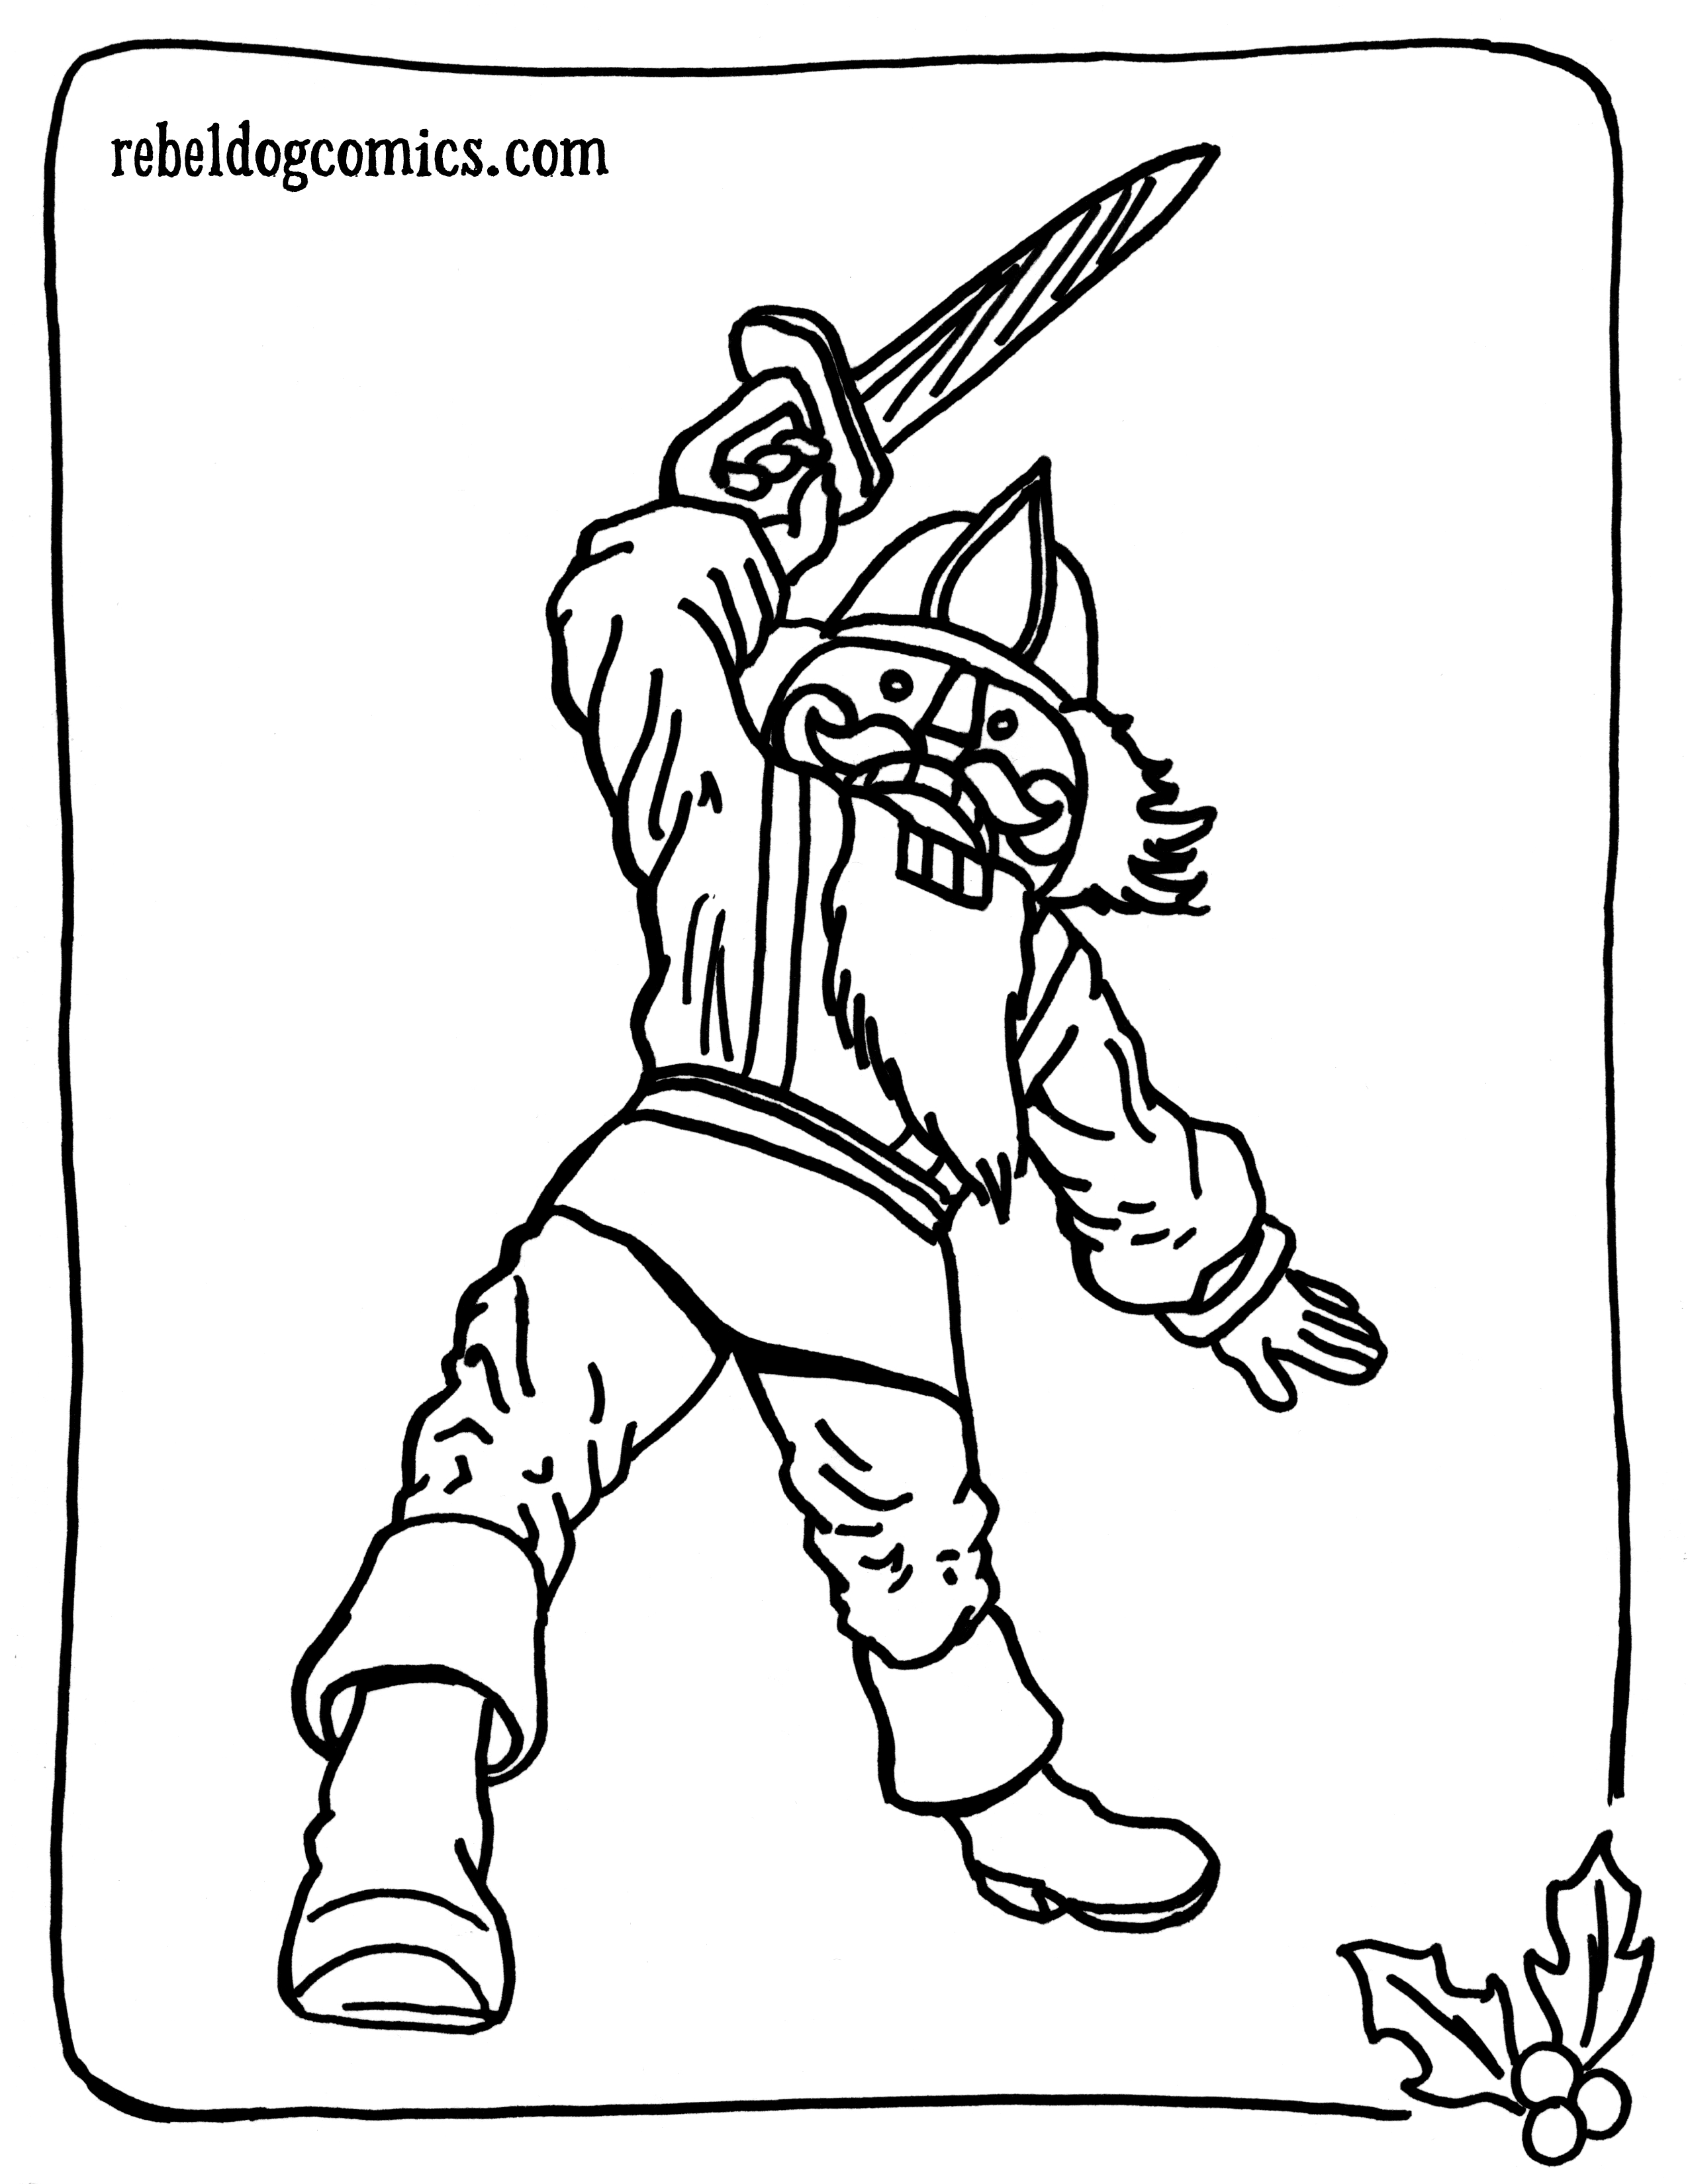 nutcracker coloring page nutcracker coloring pages coloring pages for children coloring nutcracker page